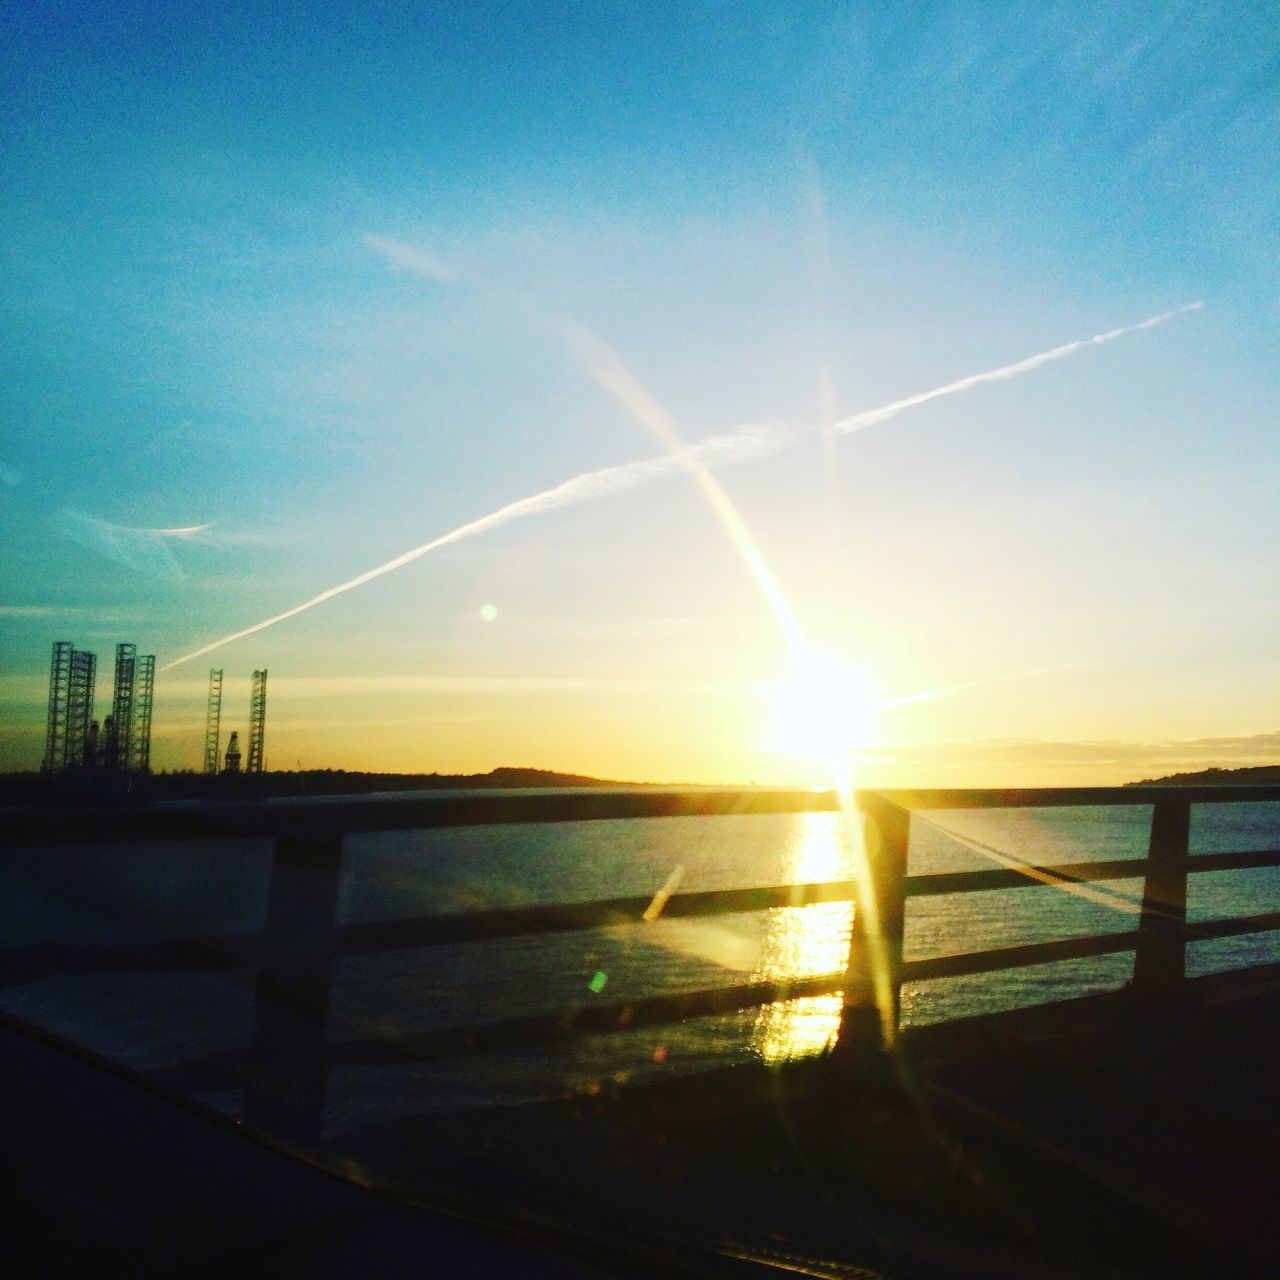 sun, sunlight, sunbeam, sunset, lens flare, nature, scenics, beauty in nature, no people, sky, water, tranquility, outdoors, tranquil scene, built structure, sea, silhouette, architecture, travel destinations, building exterior, day, sunshine, refraction, horizon over water, vapor trail